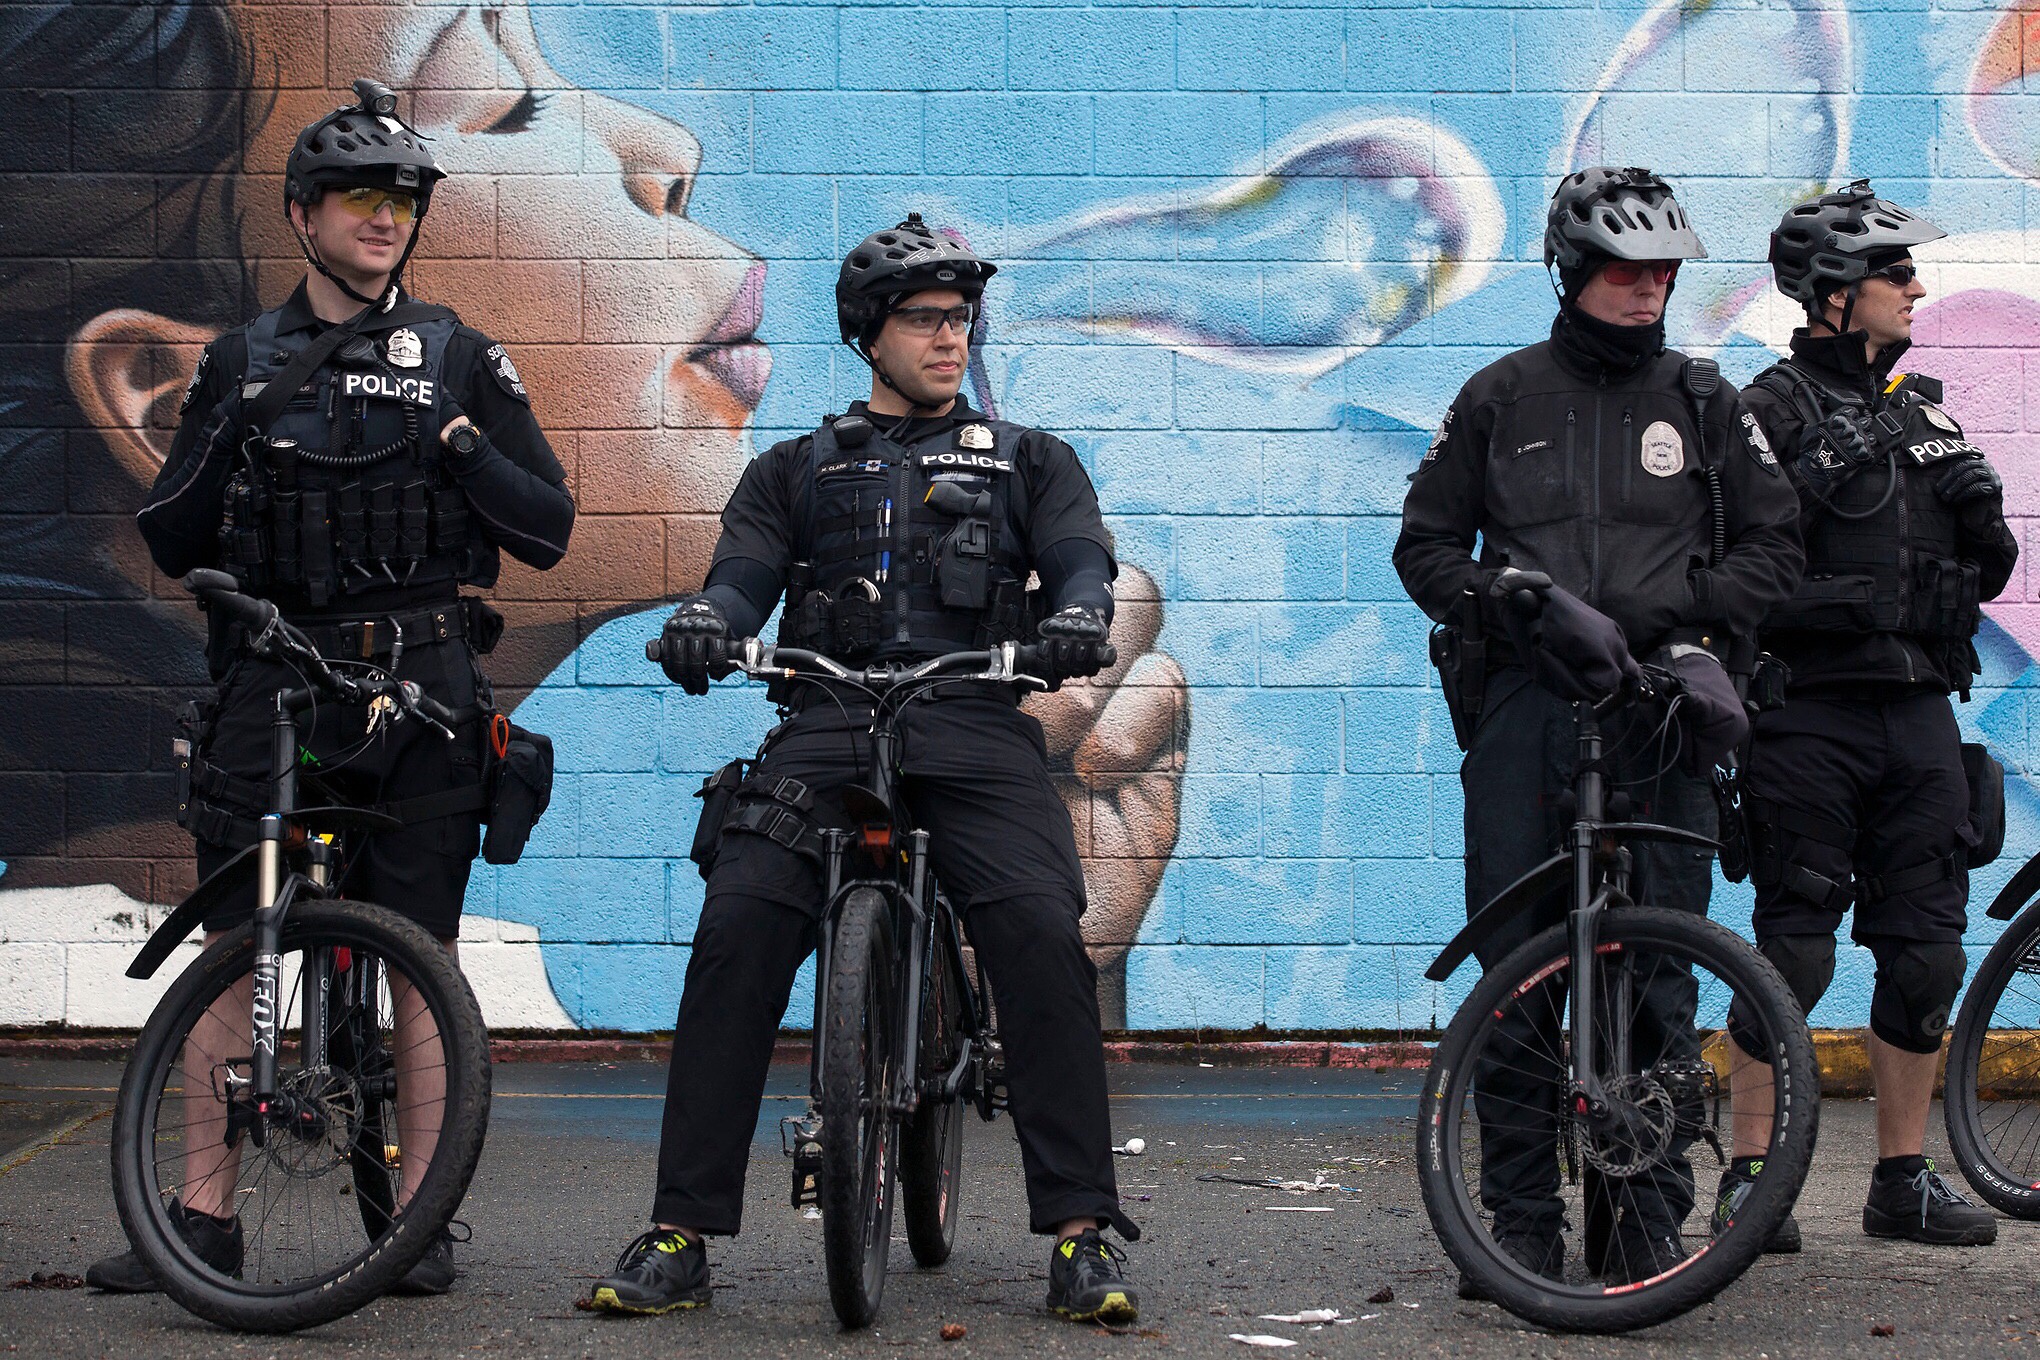 Details and critics emerge for new Seattle police contract